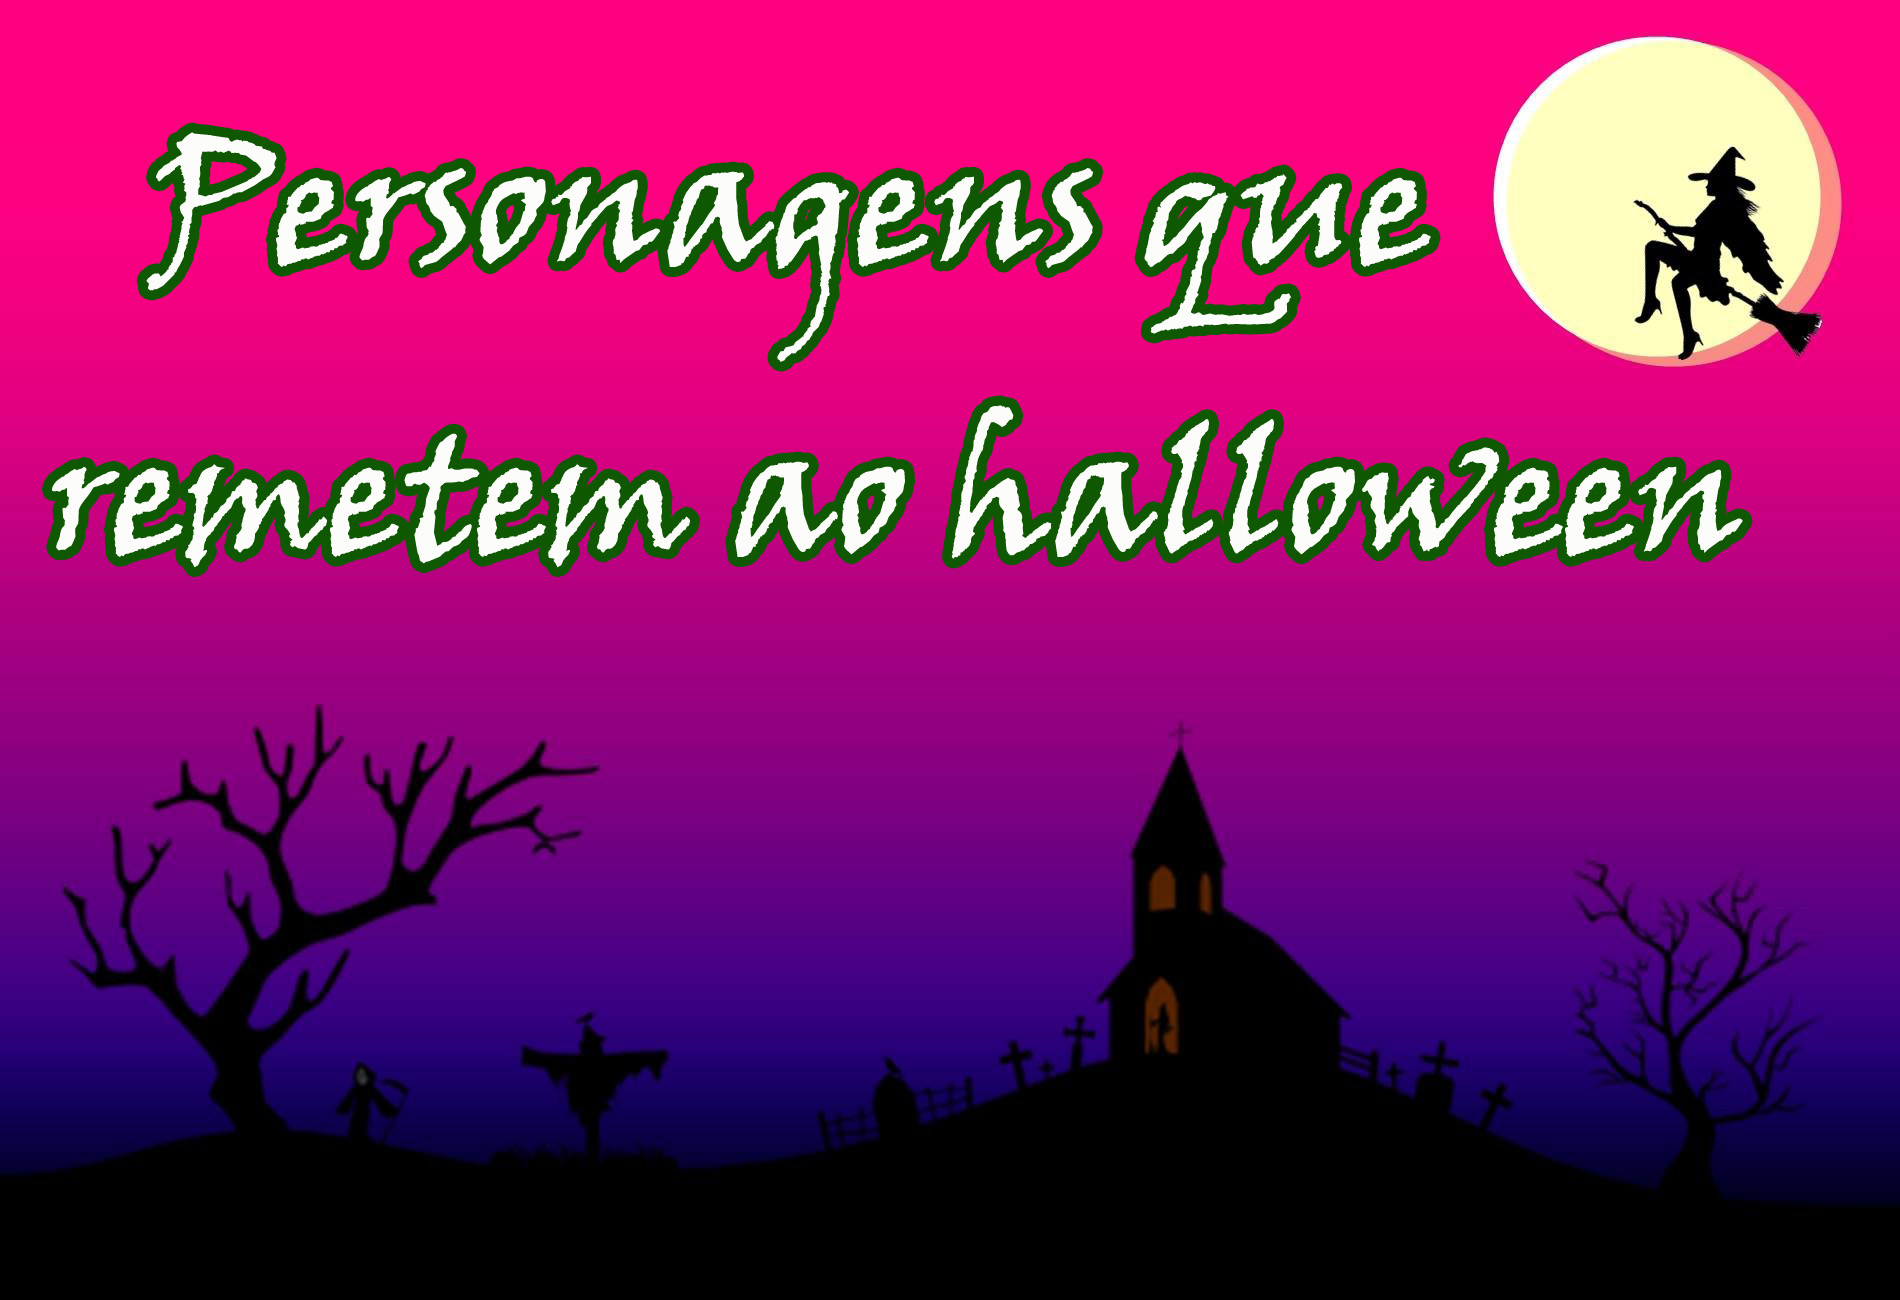 personagens-que-remetem-ao-halloween